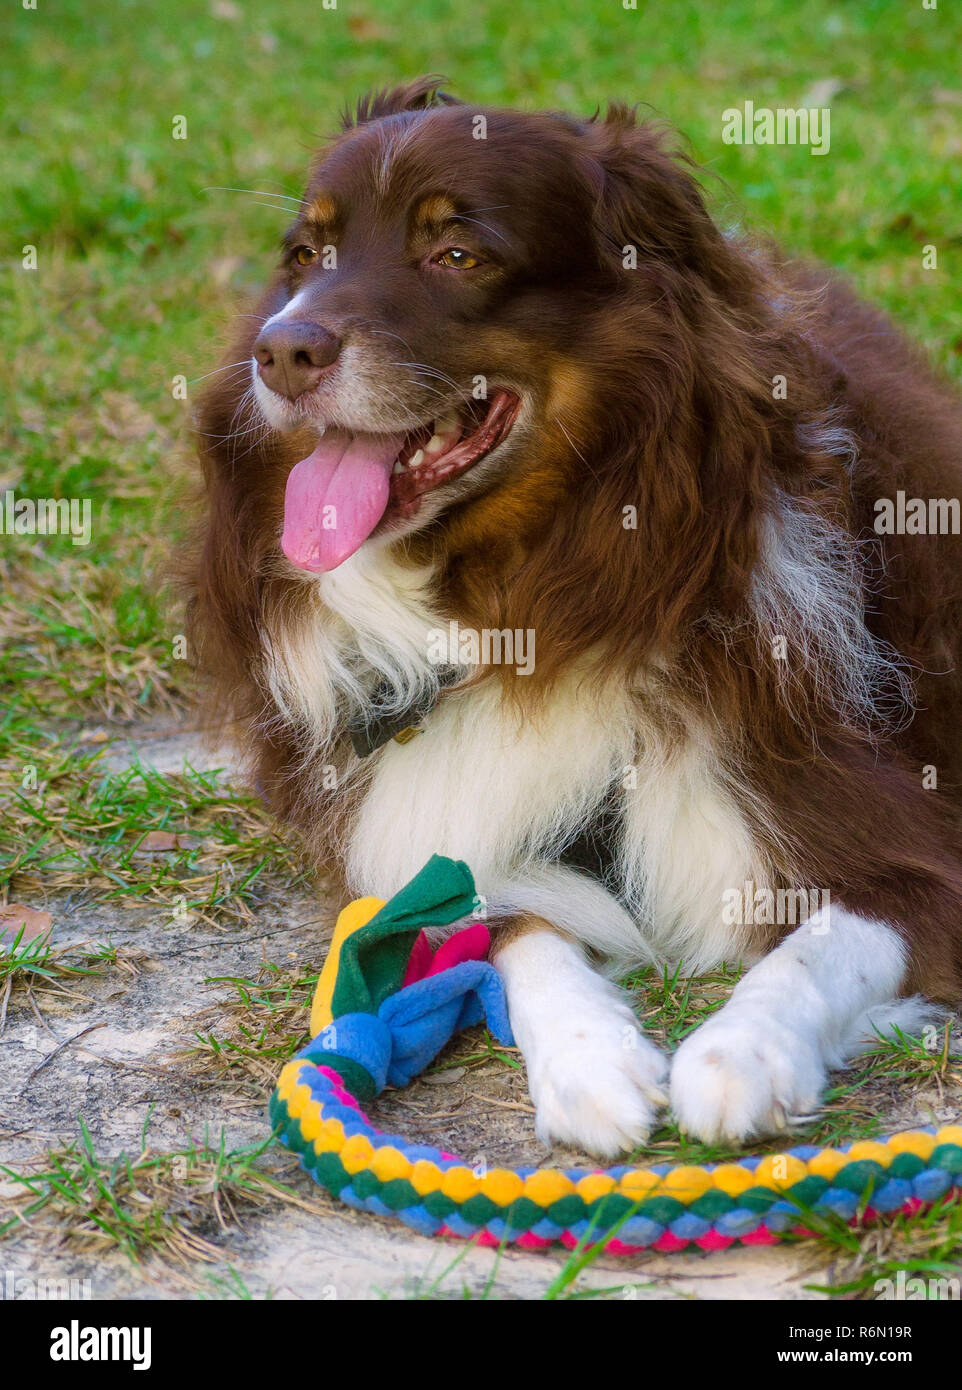 Cowboy, a red tri Australian Shepherd, plays with a braided tug toy, October 29, 2015, in Coden, Alabama. - Stock Image